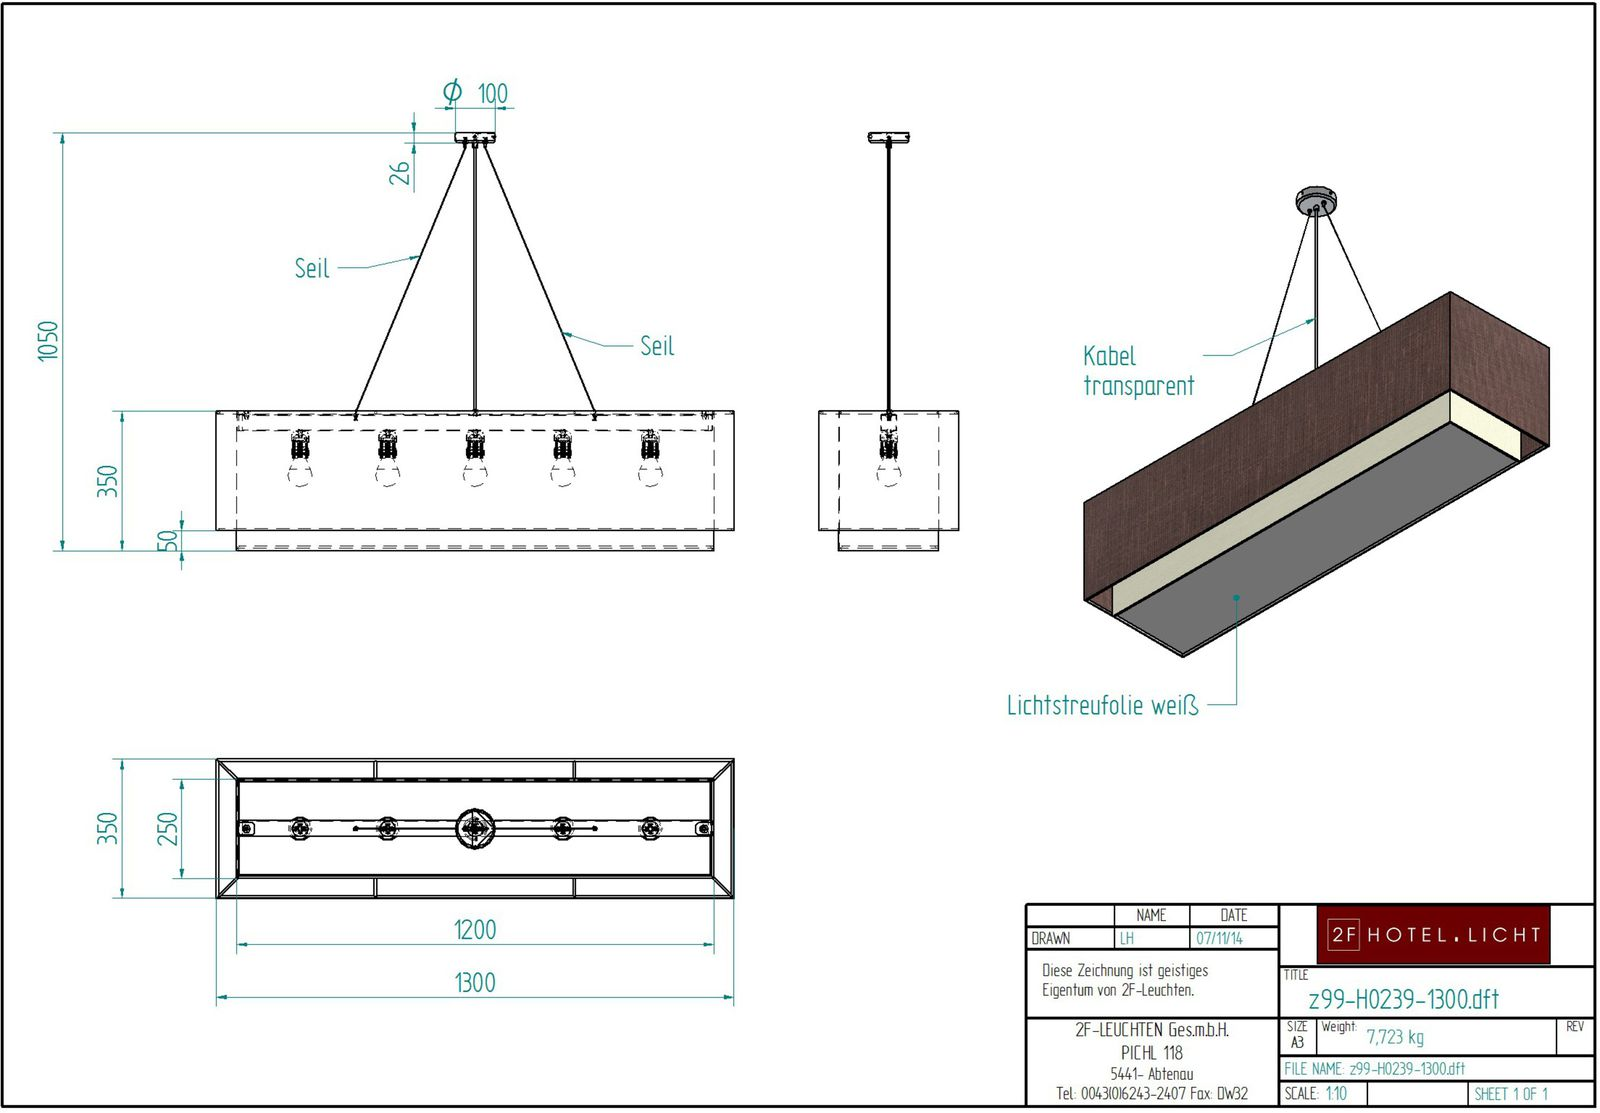 Pendant lamp, lenght=2000mm, height complete=900mm, techn. details: 2xT5 80W, dali dimmbar